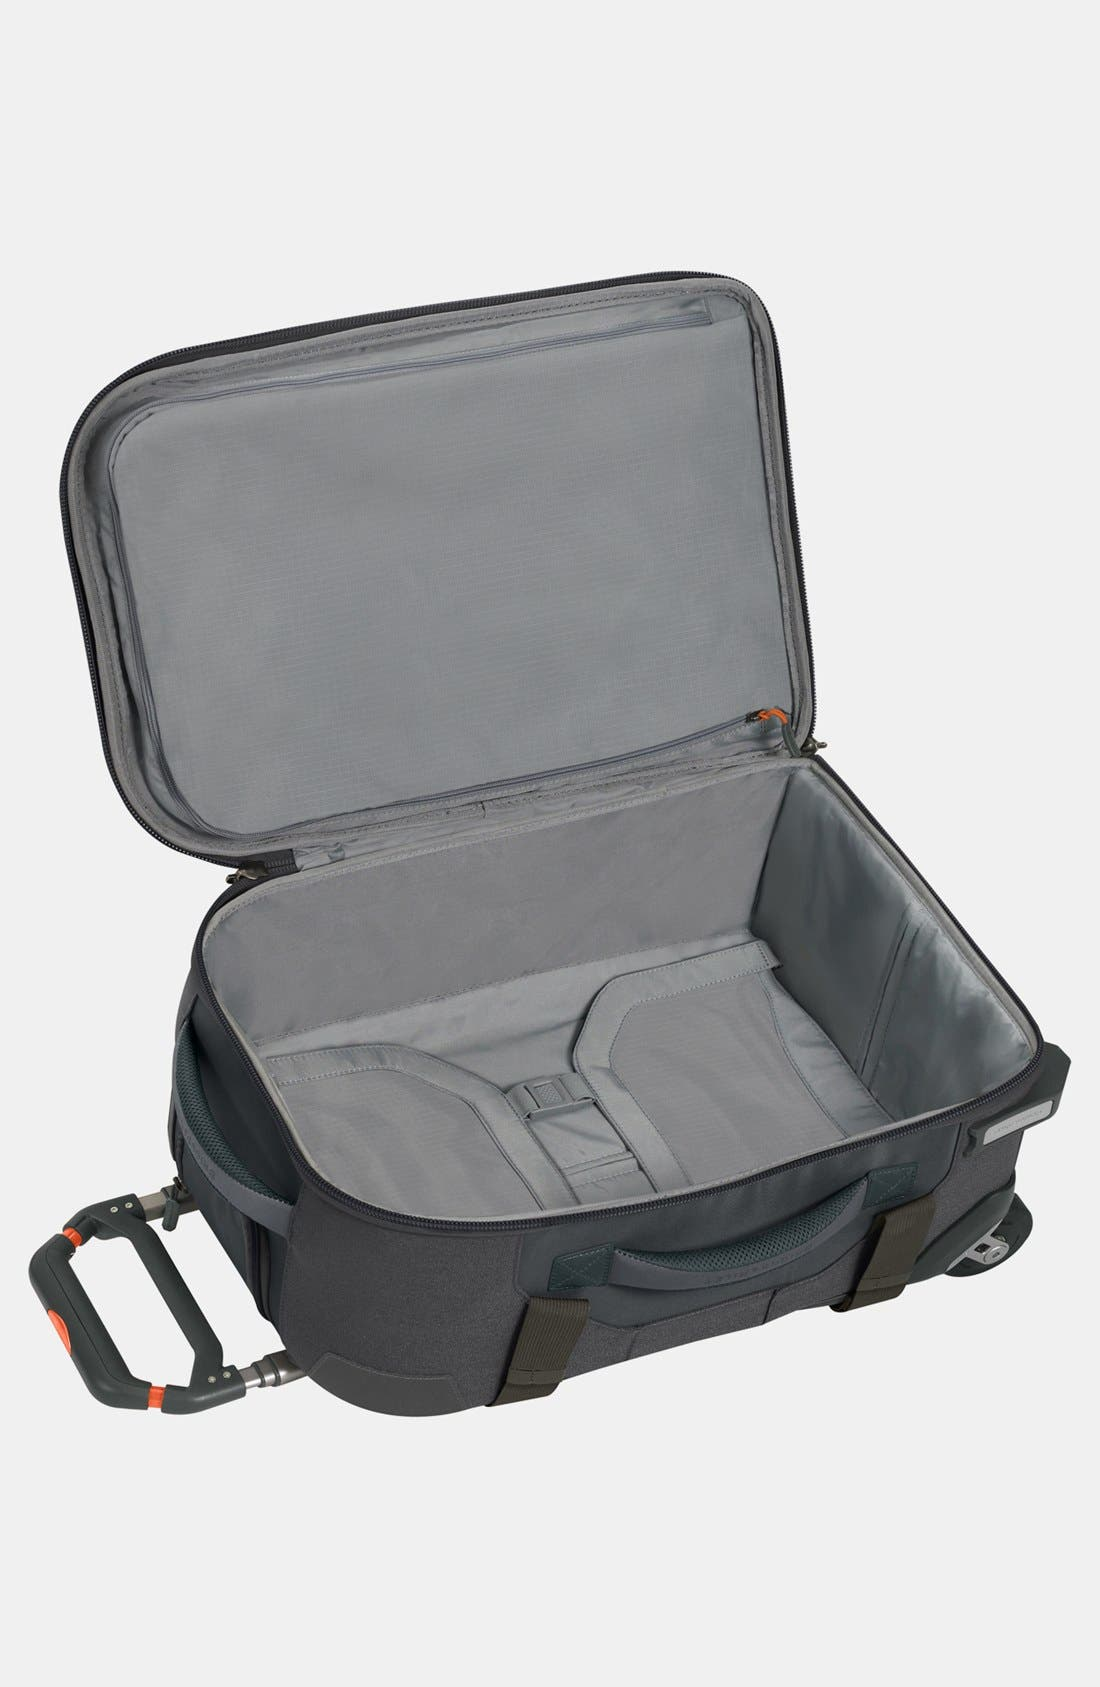 Alternate Image 2  - Briggs & Riley 'Explore' Wide Body Carry-On